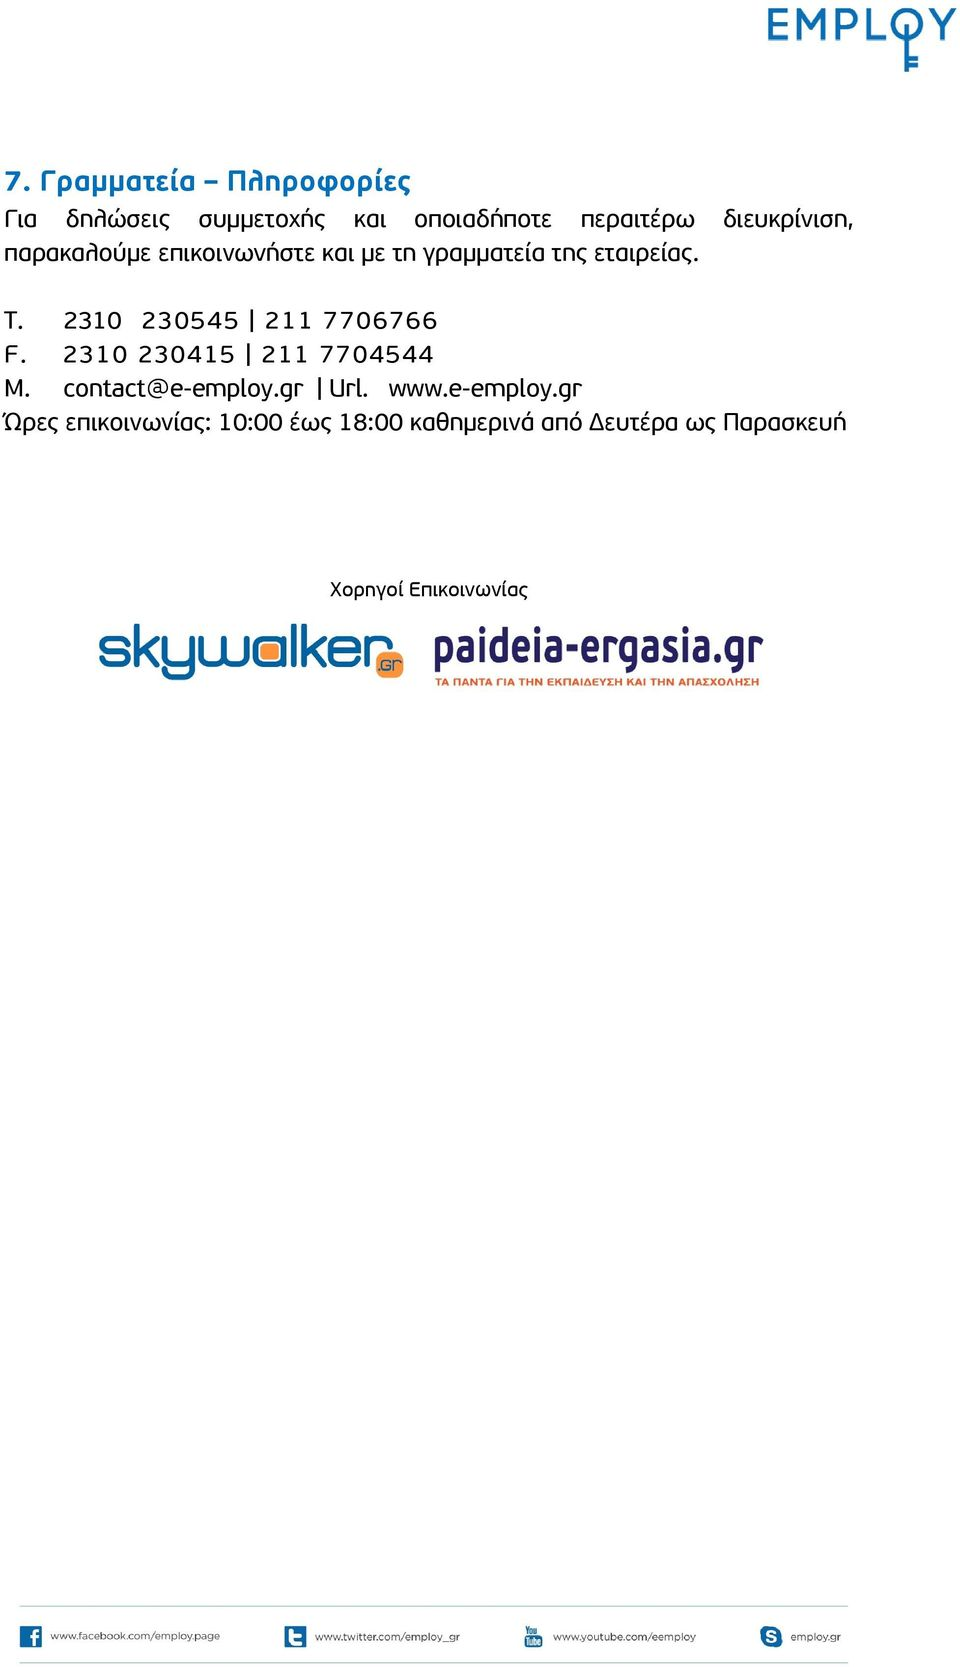 2310 230545 211 7706766 F. 2310 230415 211 7704544 M. contact@e-employ.gr Url. www.